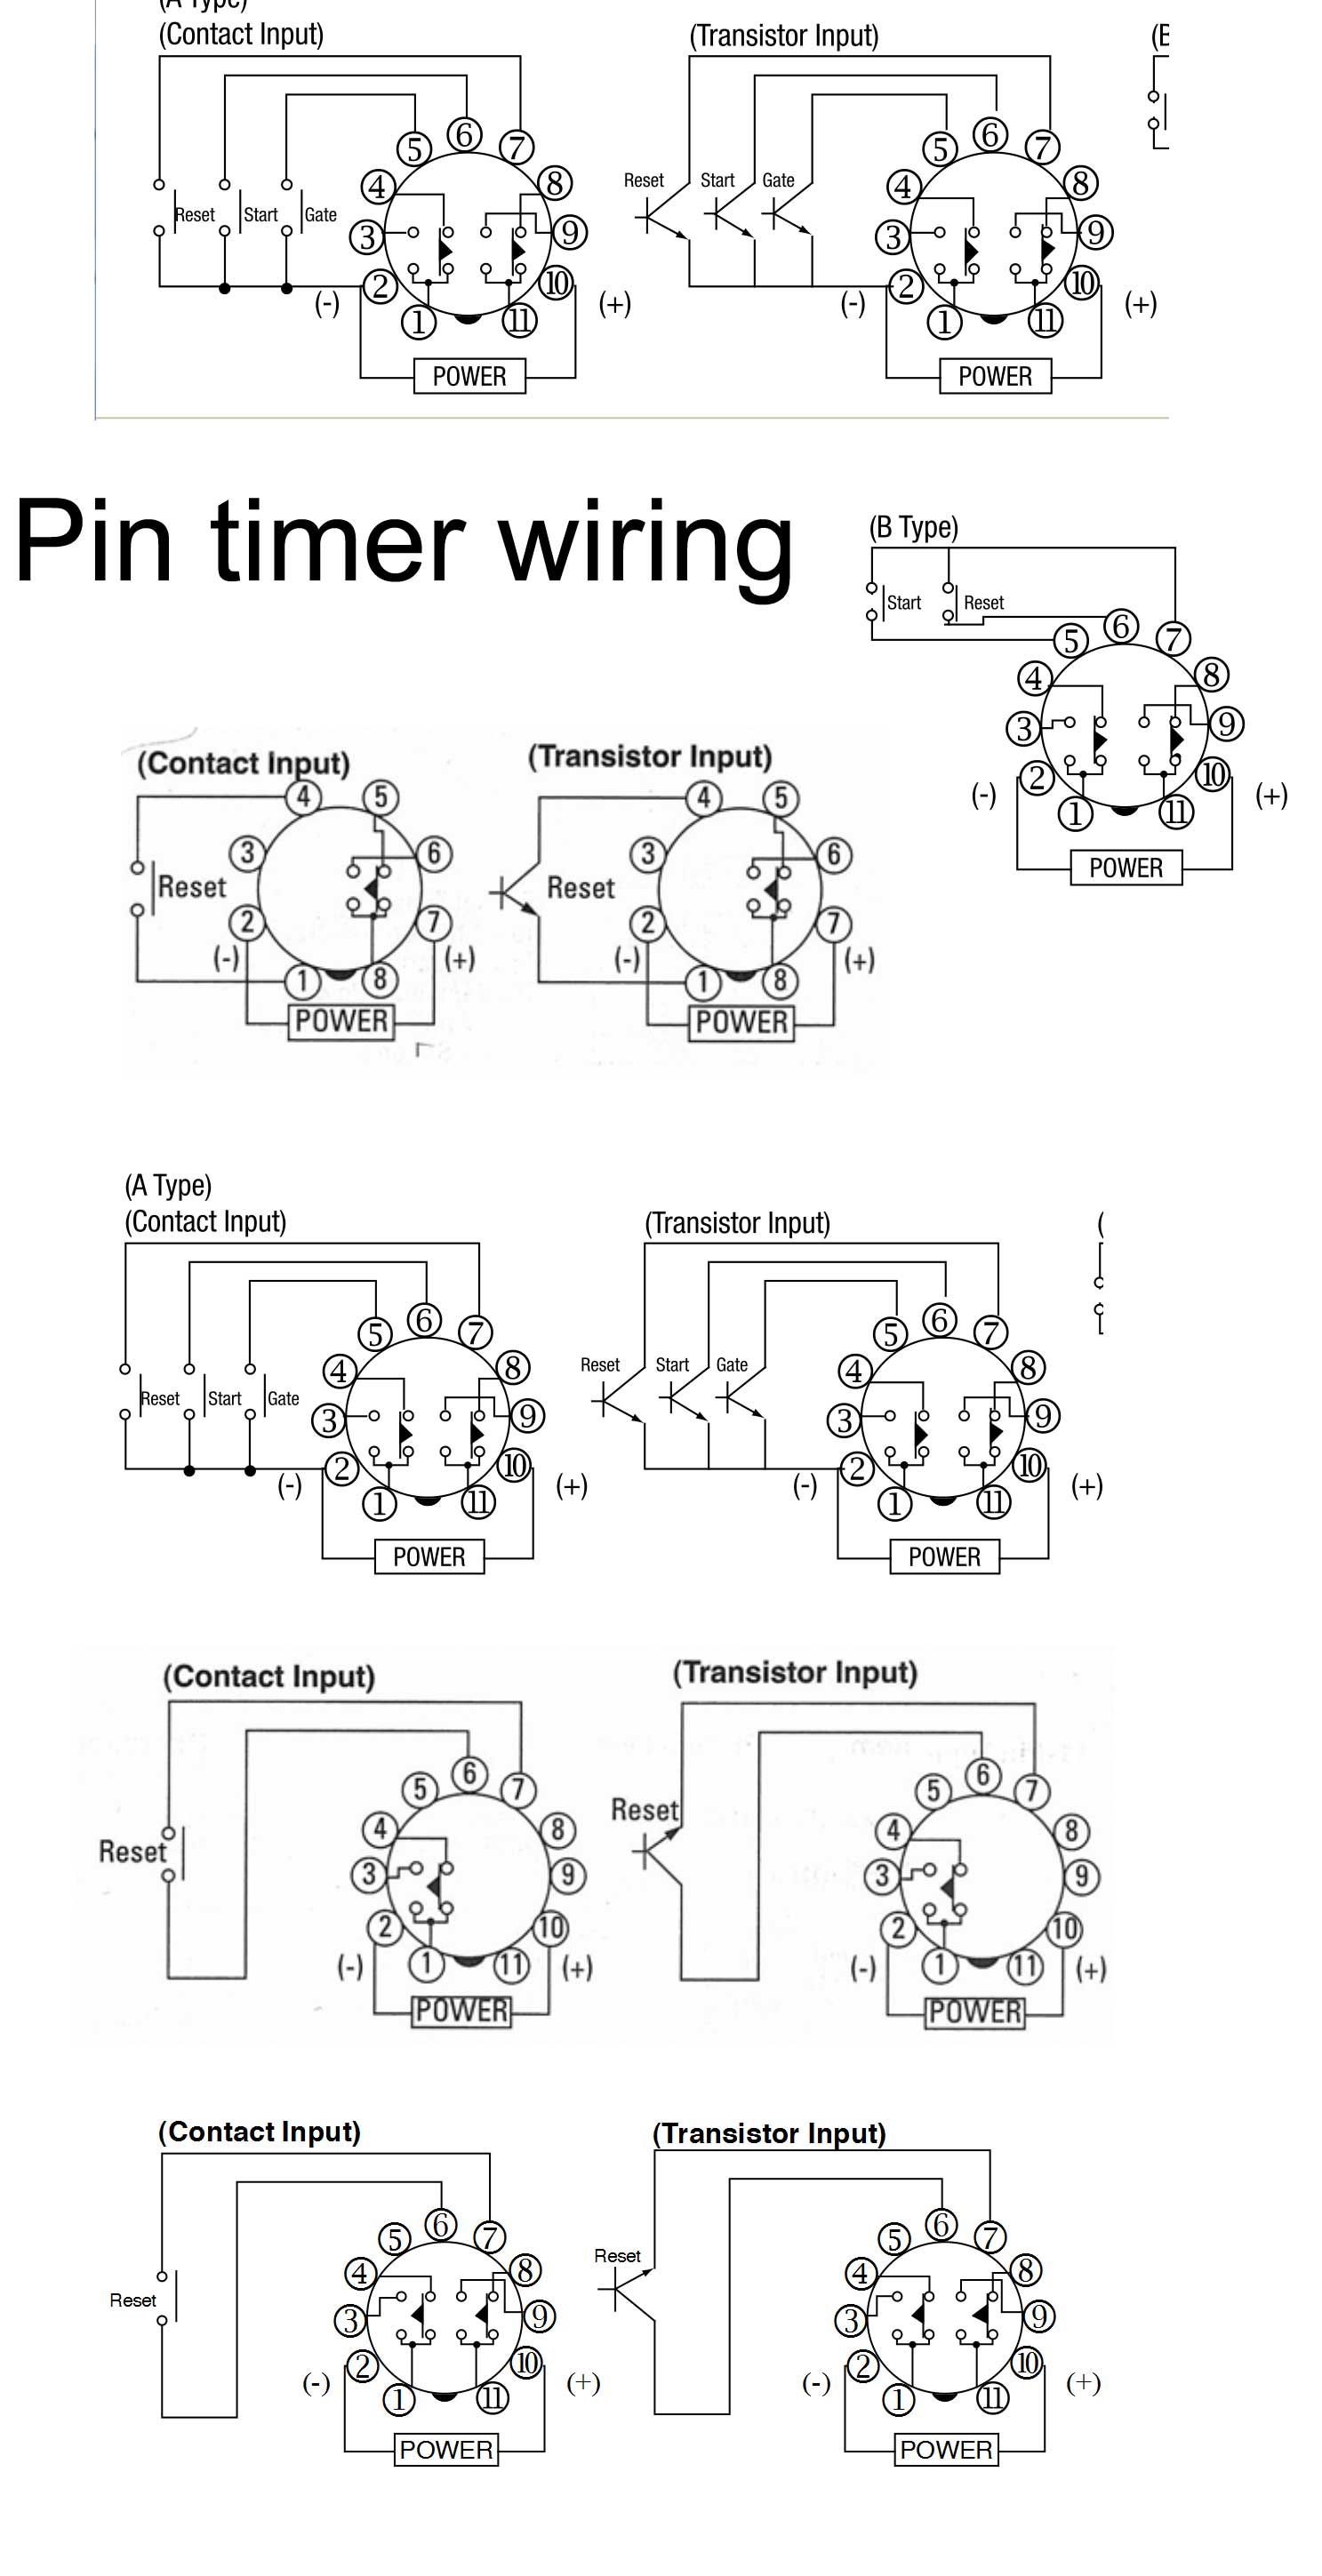 Pin timer wiring 12 how to wire pin timers pioneer eq-e303 8 pin din wiring diagram at fashall.co